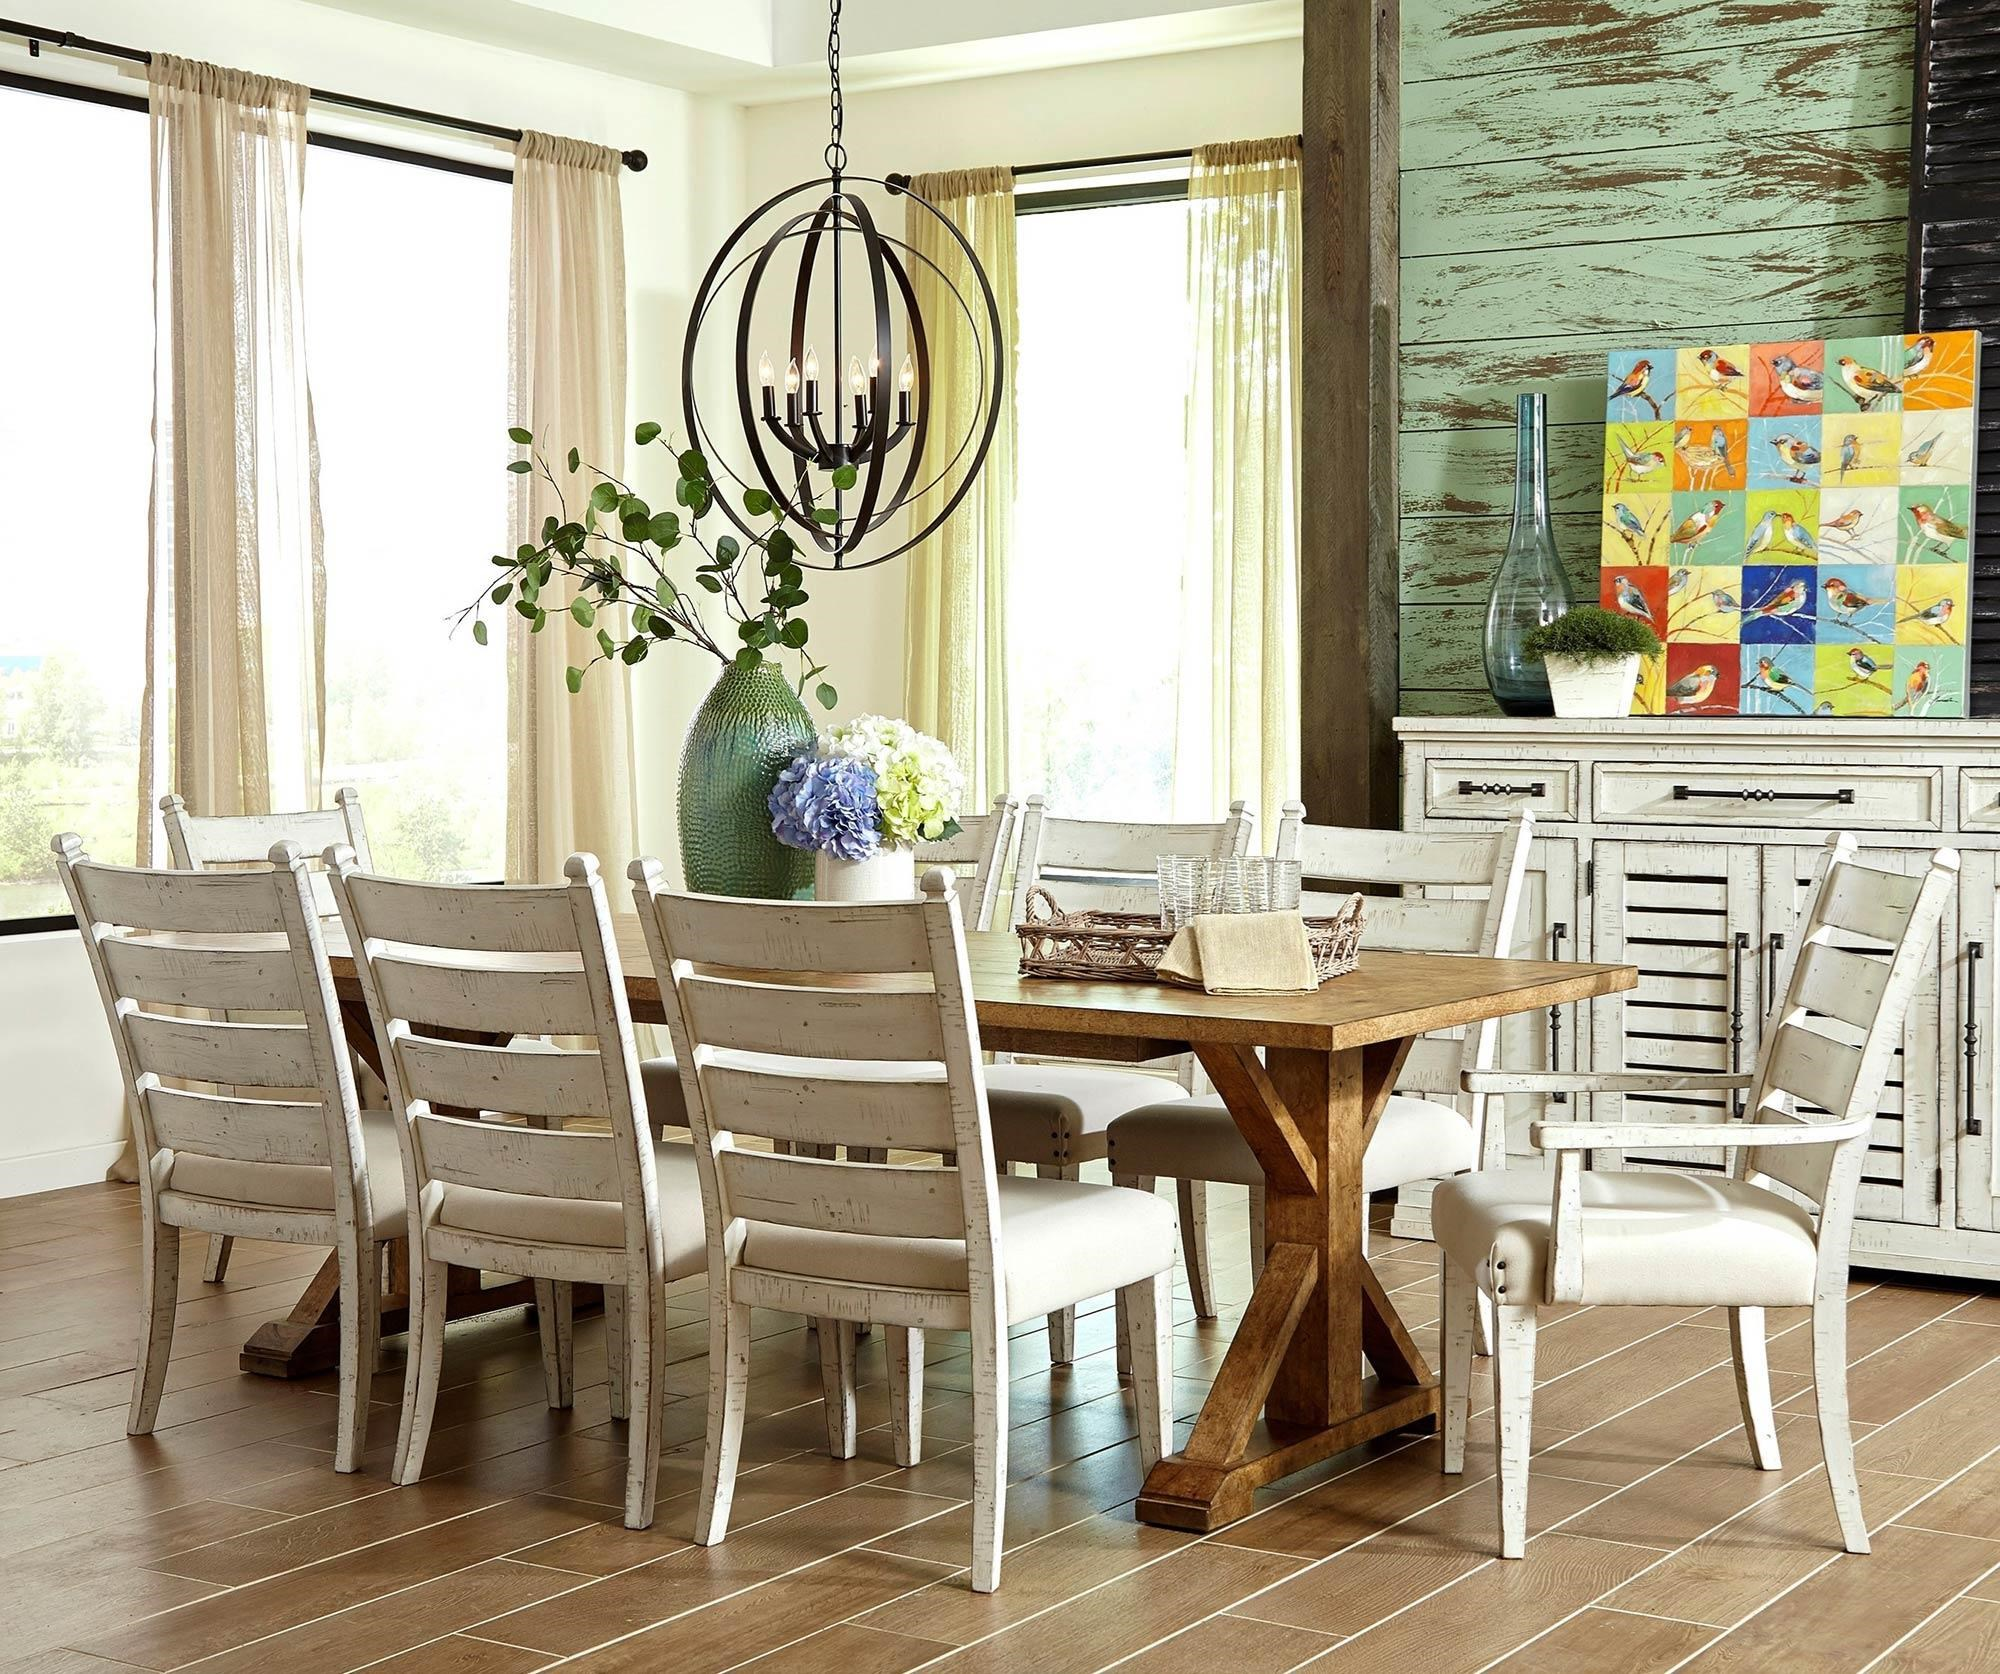 7PC Dining Table & Chair Set